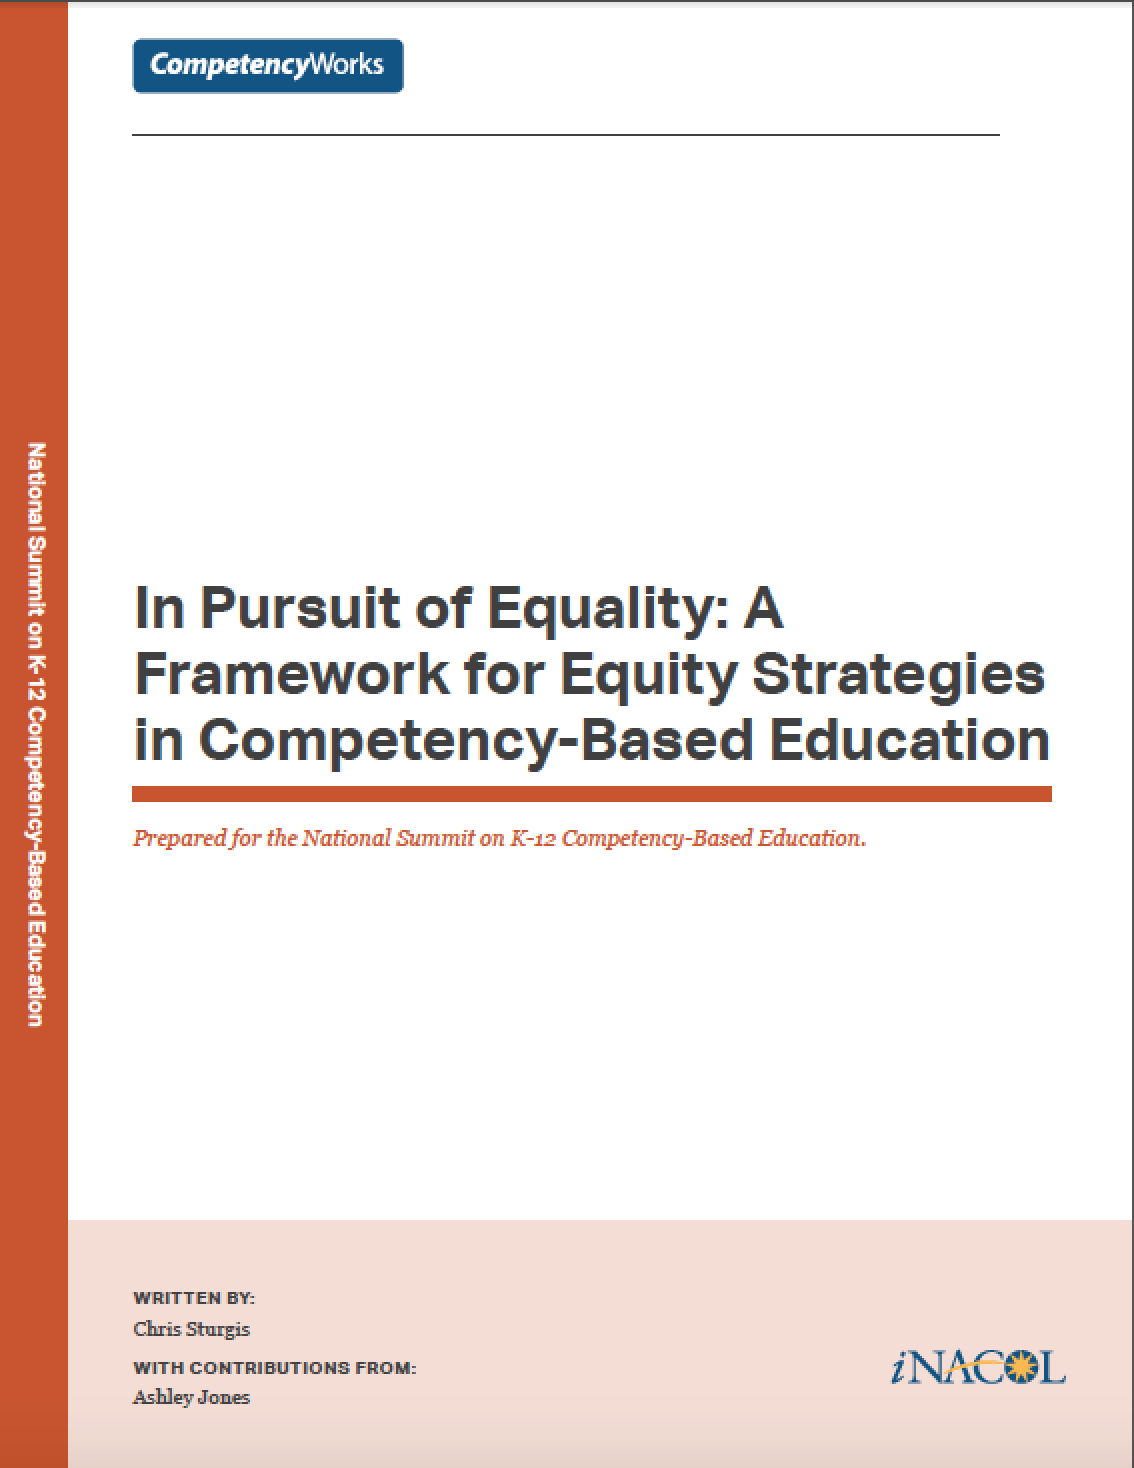 In Pursuit of Equality: A Framework for Equity Strategies in Personalized, Competency-Based Education